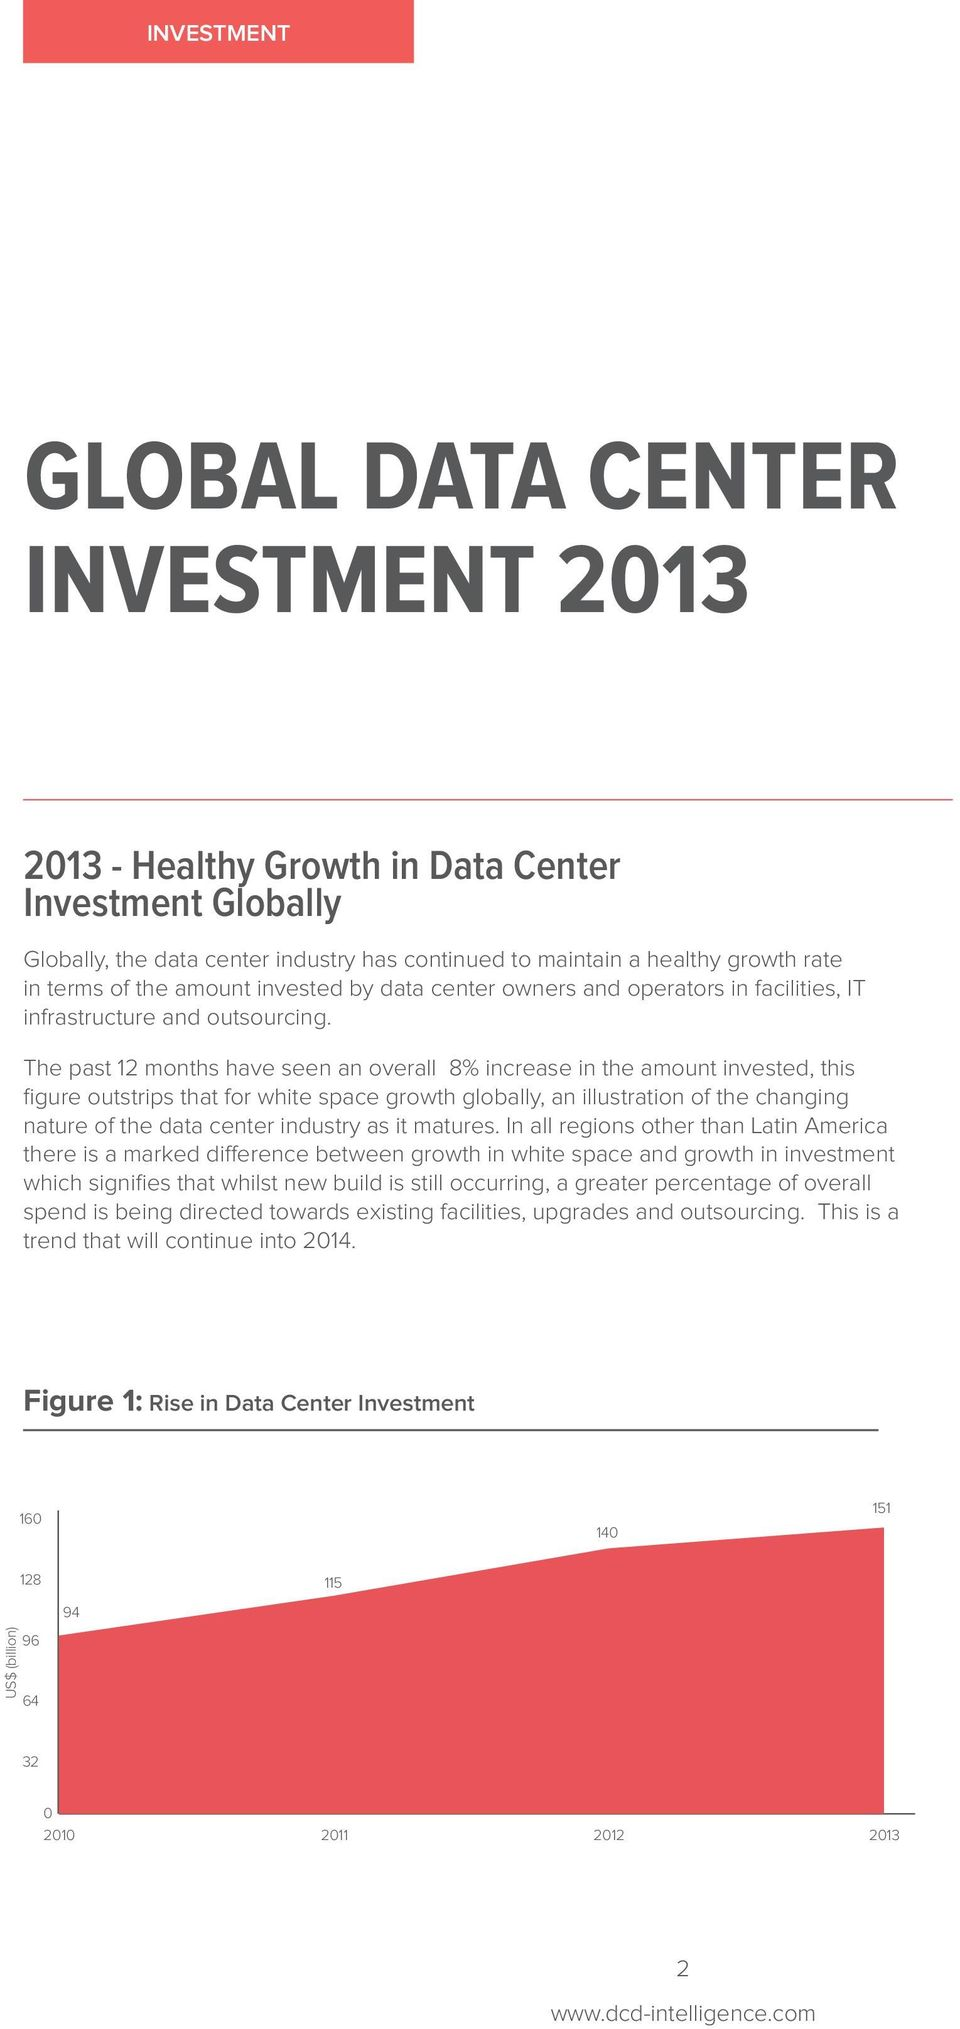 The past 12 months have seen an overall 8% increase in the amount invested, this figure outstrips that for white space growth globally, an illustration of the changing nature of the data center